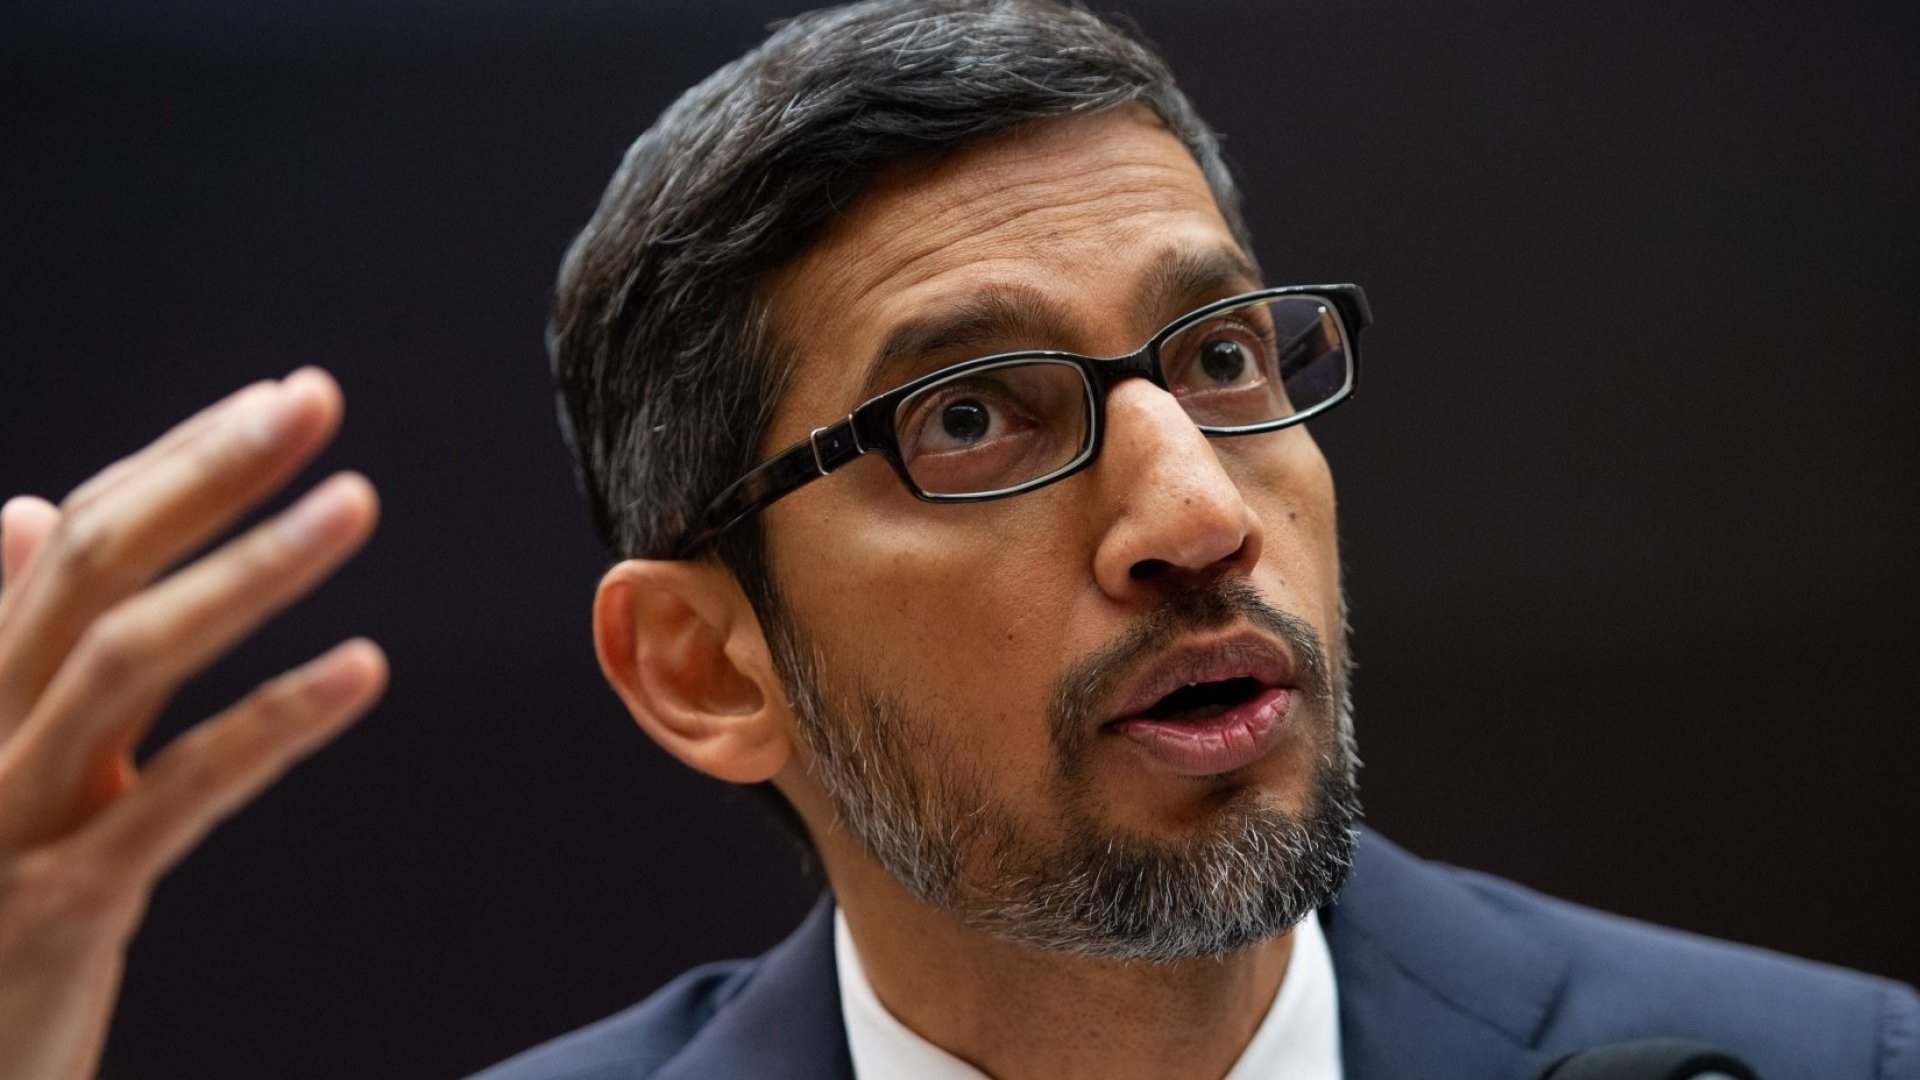 Google Could Make the Internet Respect Your Privacy. Here's Why It Won't